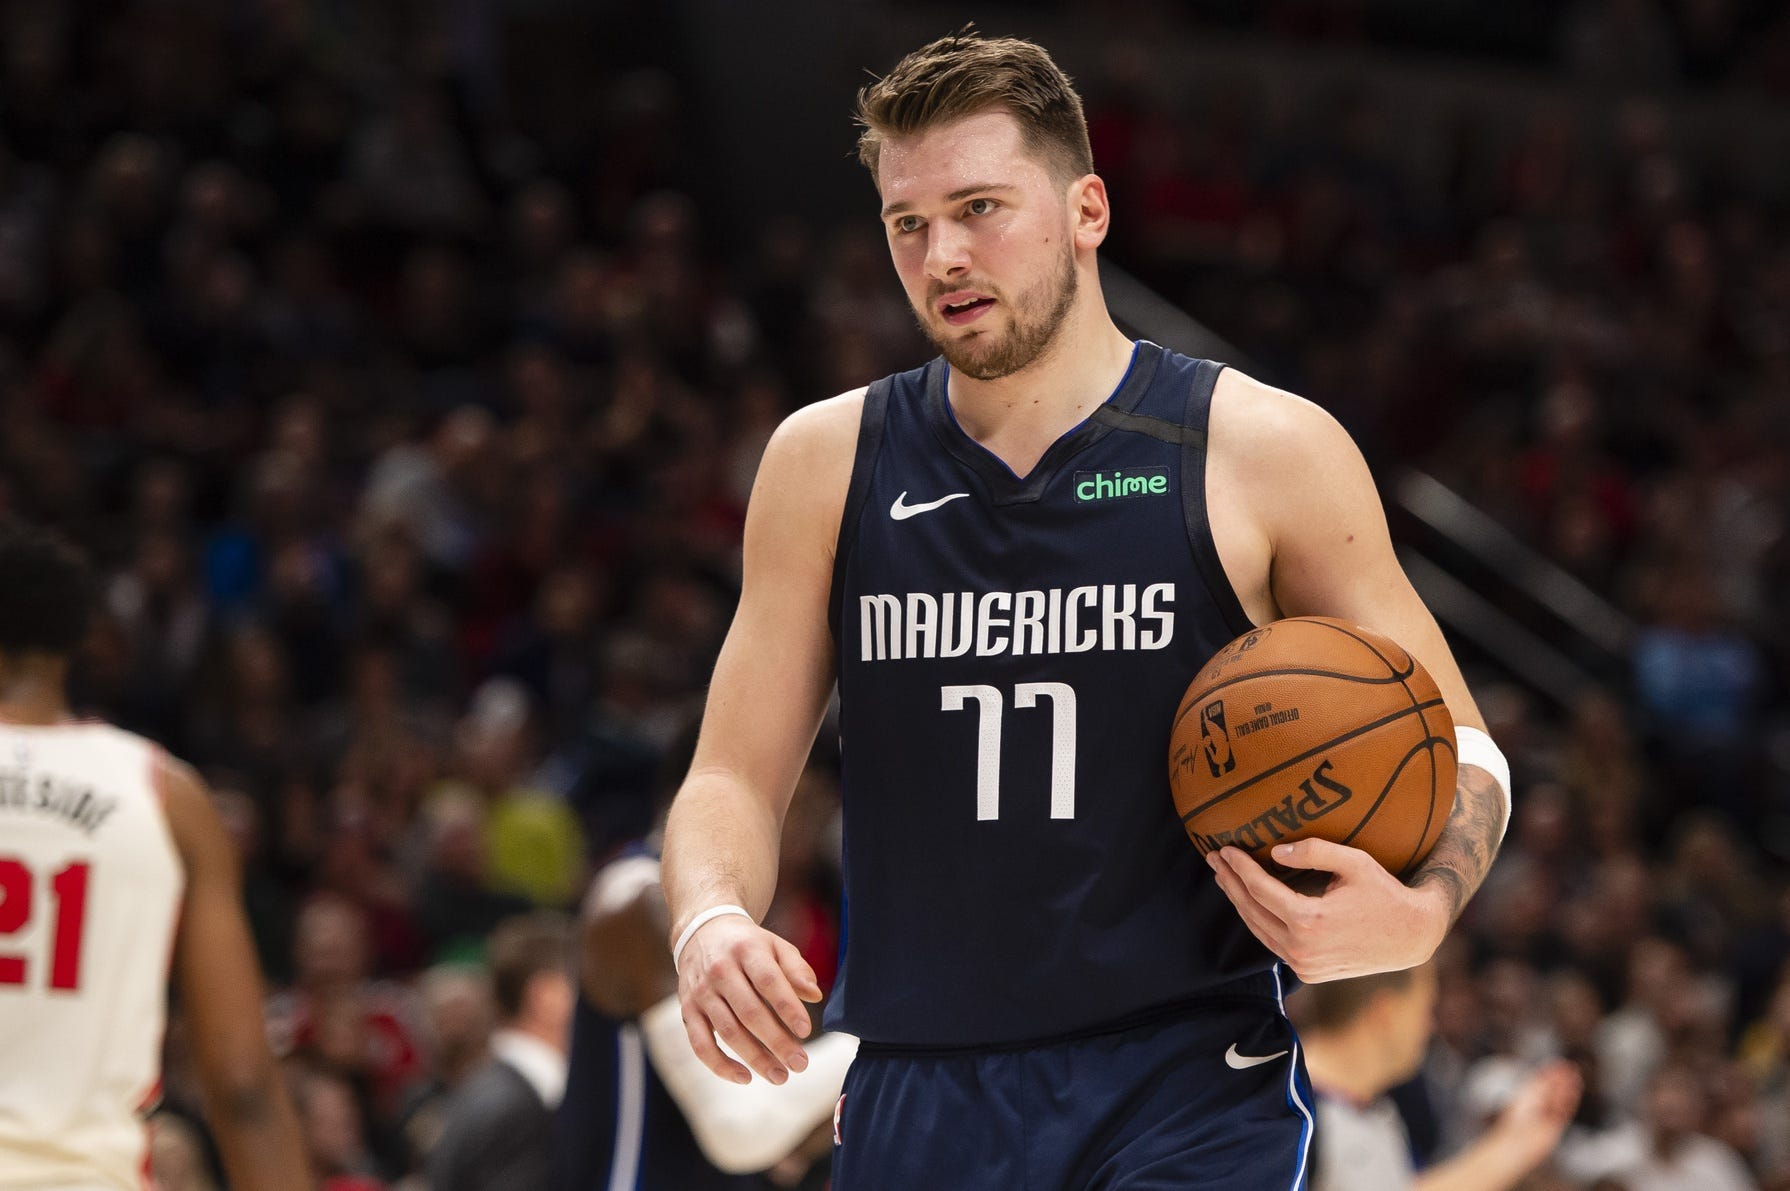 Luka Doncic Has Fully Recovered From His Hand Injury